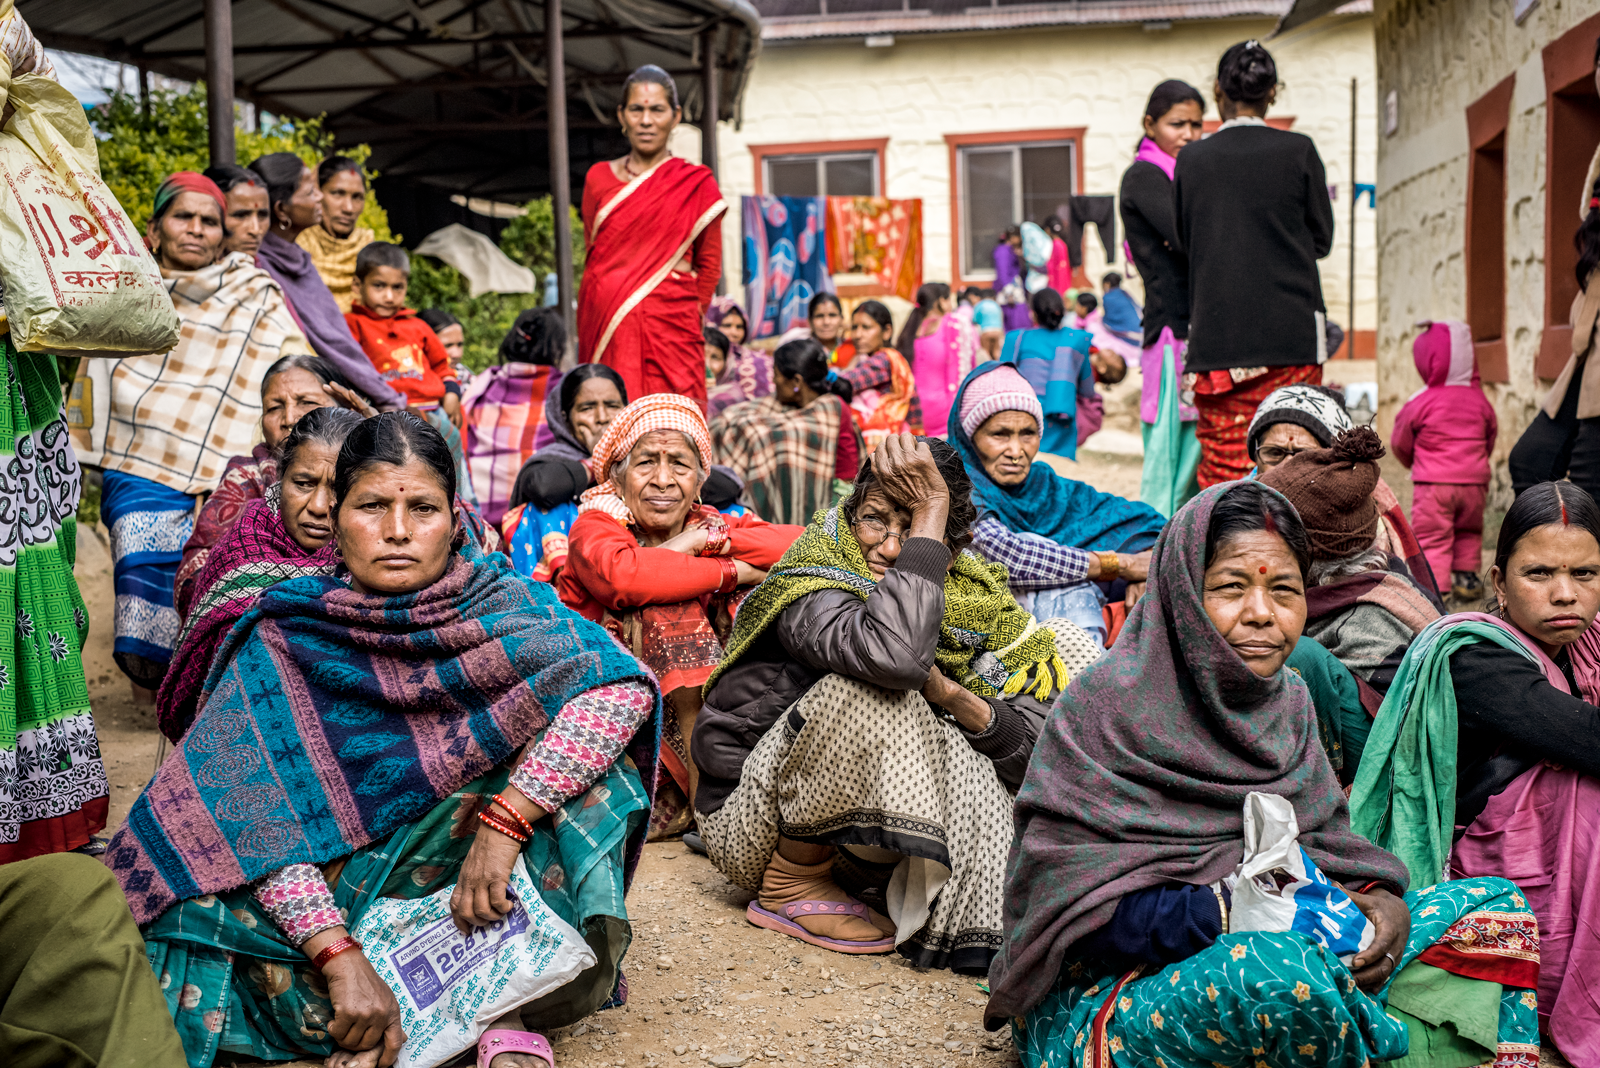 Group of Nepalese women sit in a gravel courtyear, dressed in skirts, brightly colored and patterened woven scarves, and saris.